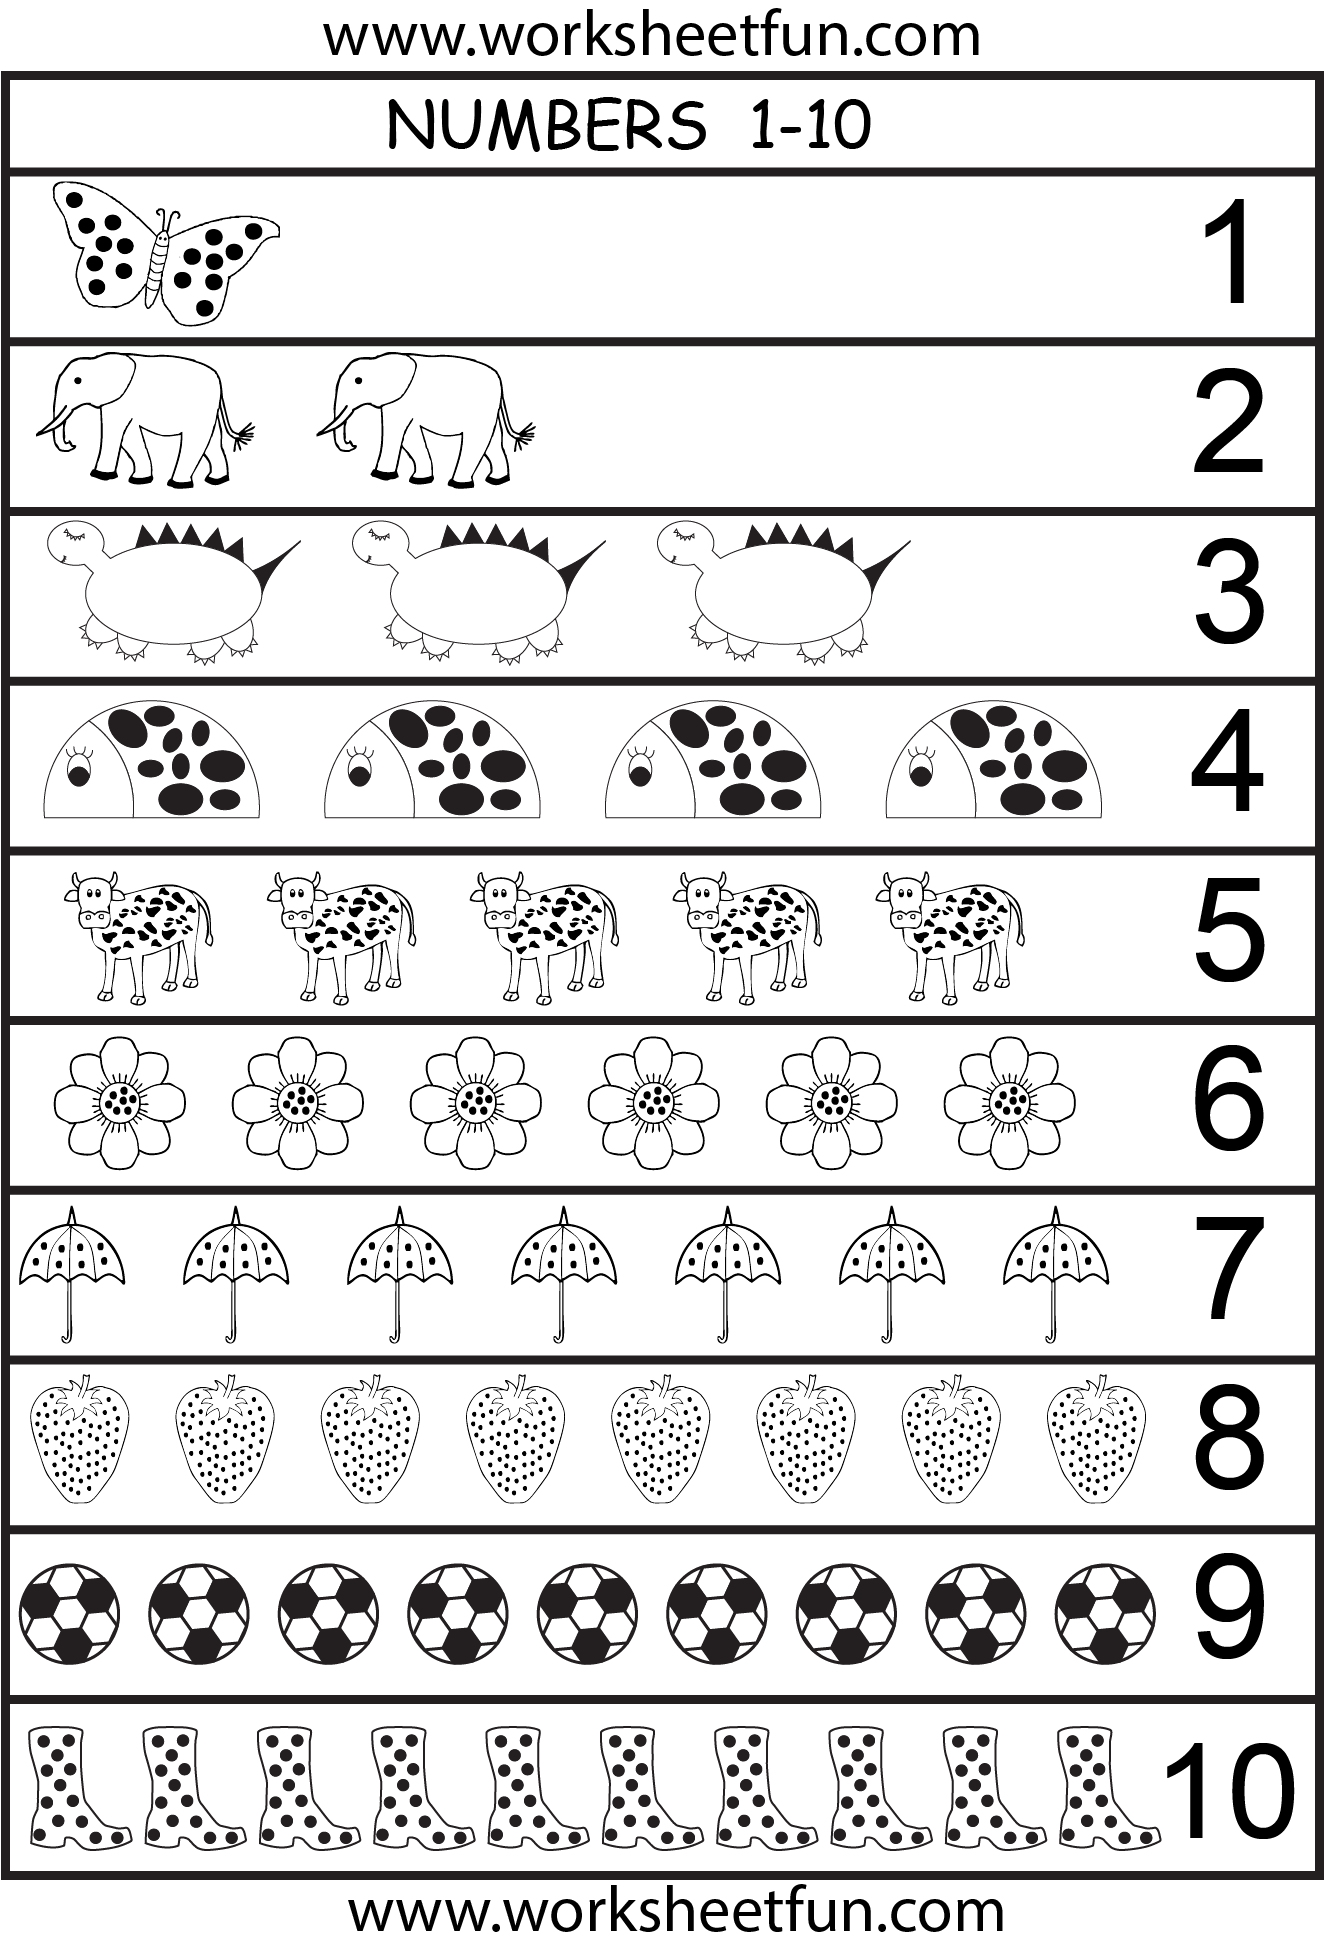 Number Chart 1 10 1 Worksheet Free Printable Worksheets Worksheetfun